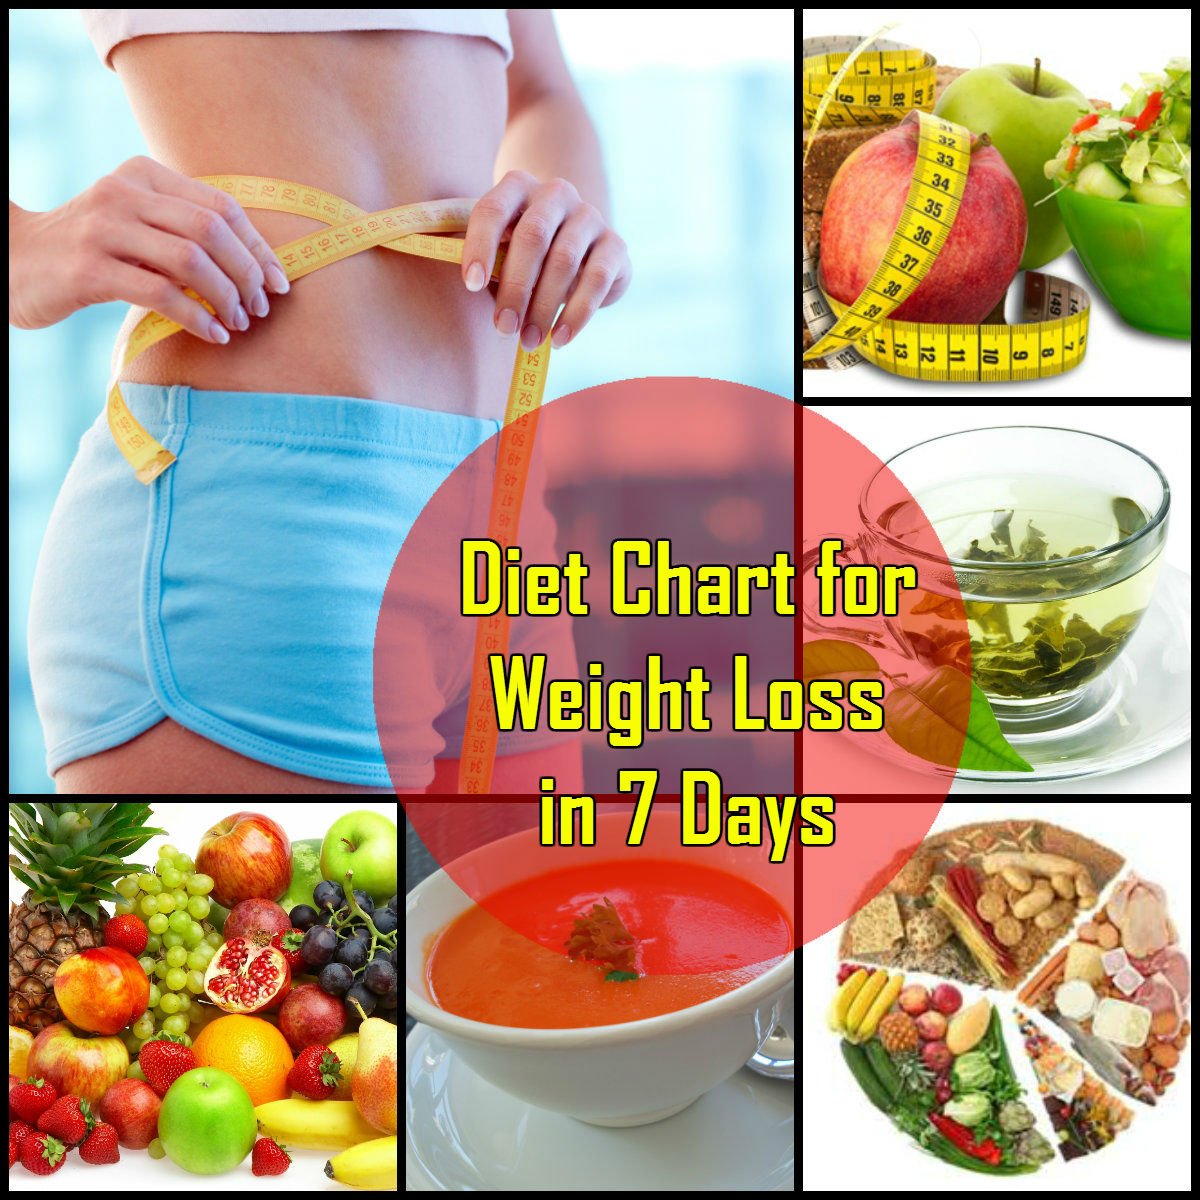 diabetes diet and exercise intervention program